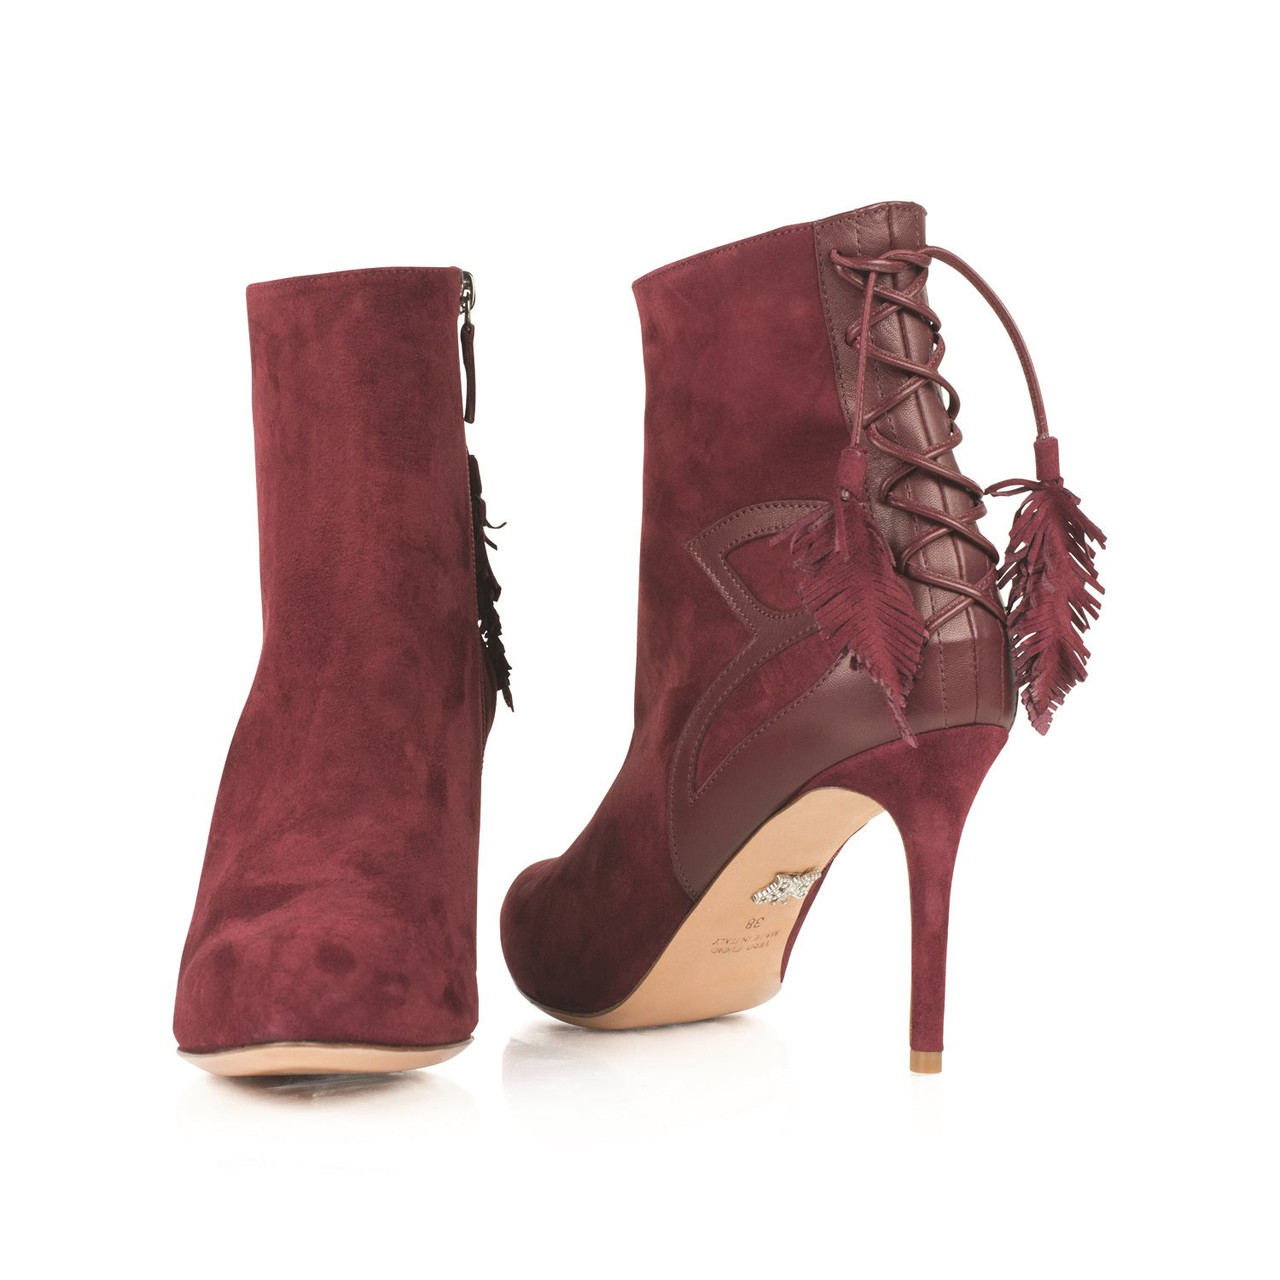 Aperto Ankle Boot Burgundy Suede